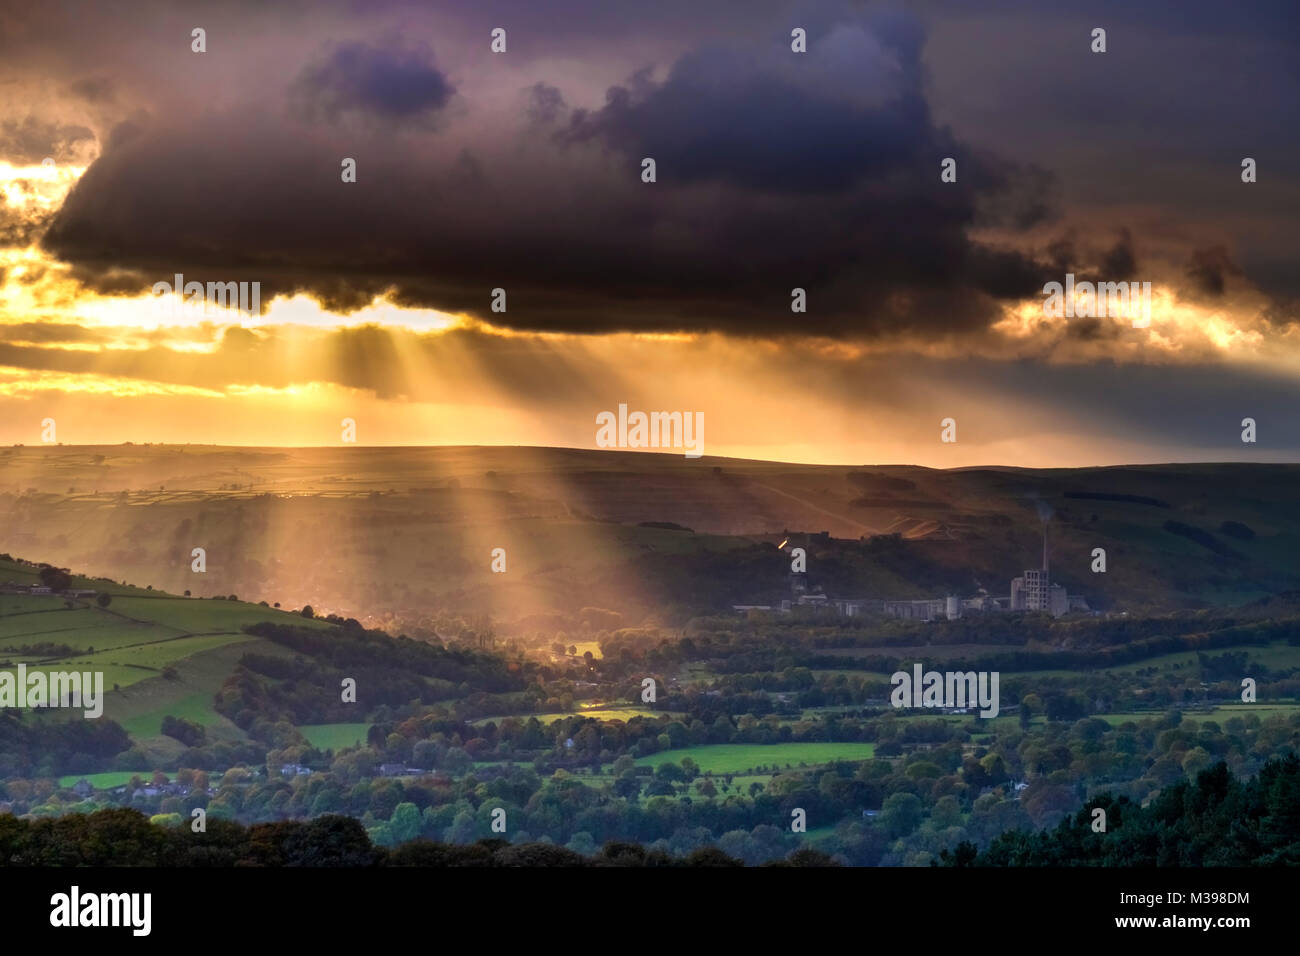 Crepuscular rays over the Hope Valley, Peak District National Park, Derbyshire, England, UK - Stock Image